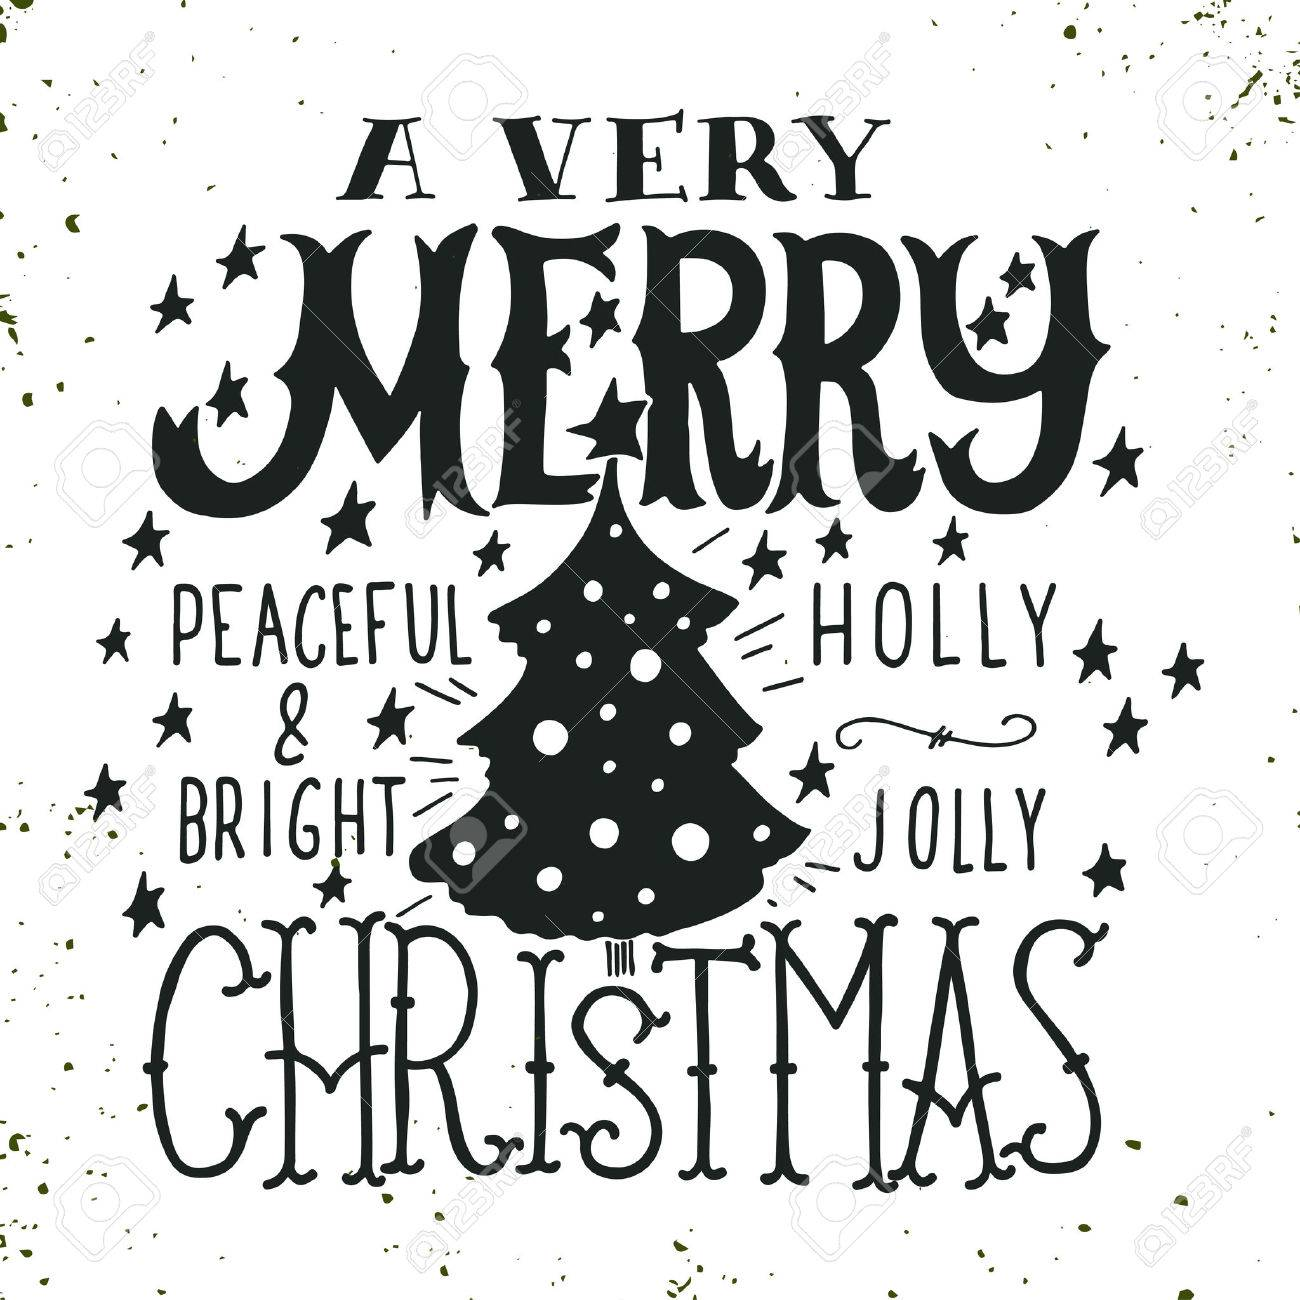 A Very Merry Christmas. Peaceful And Bright. Holly Jolly. Quotes ...